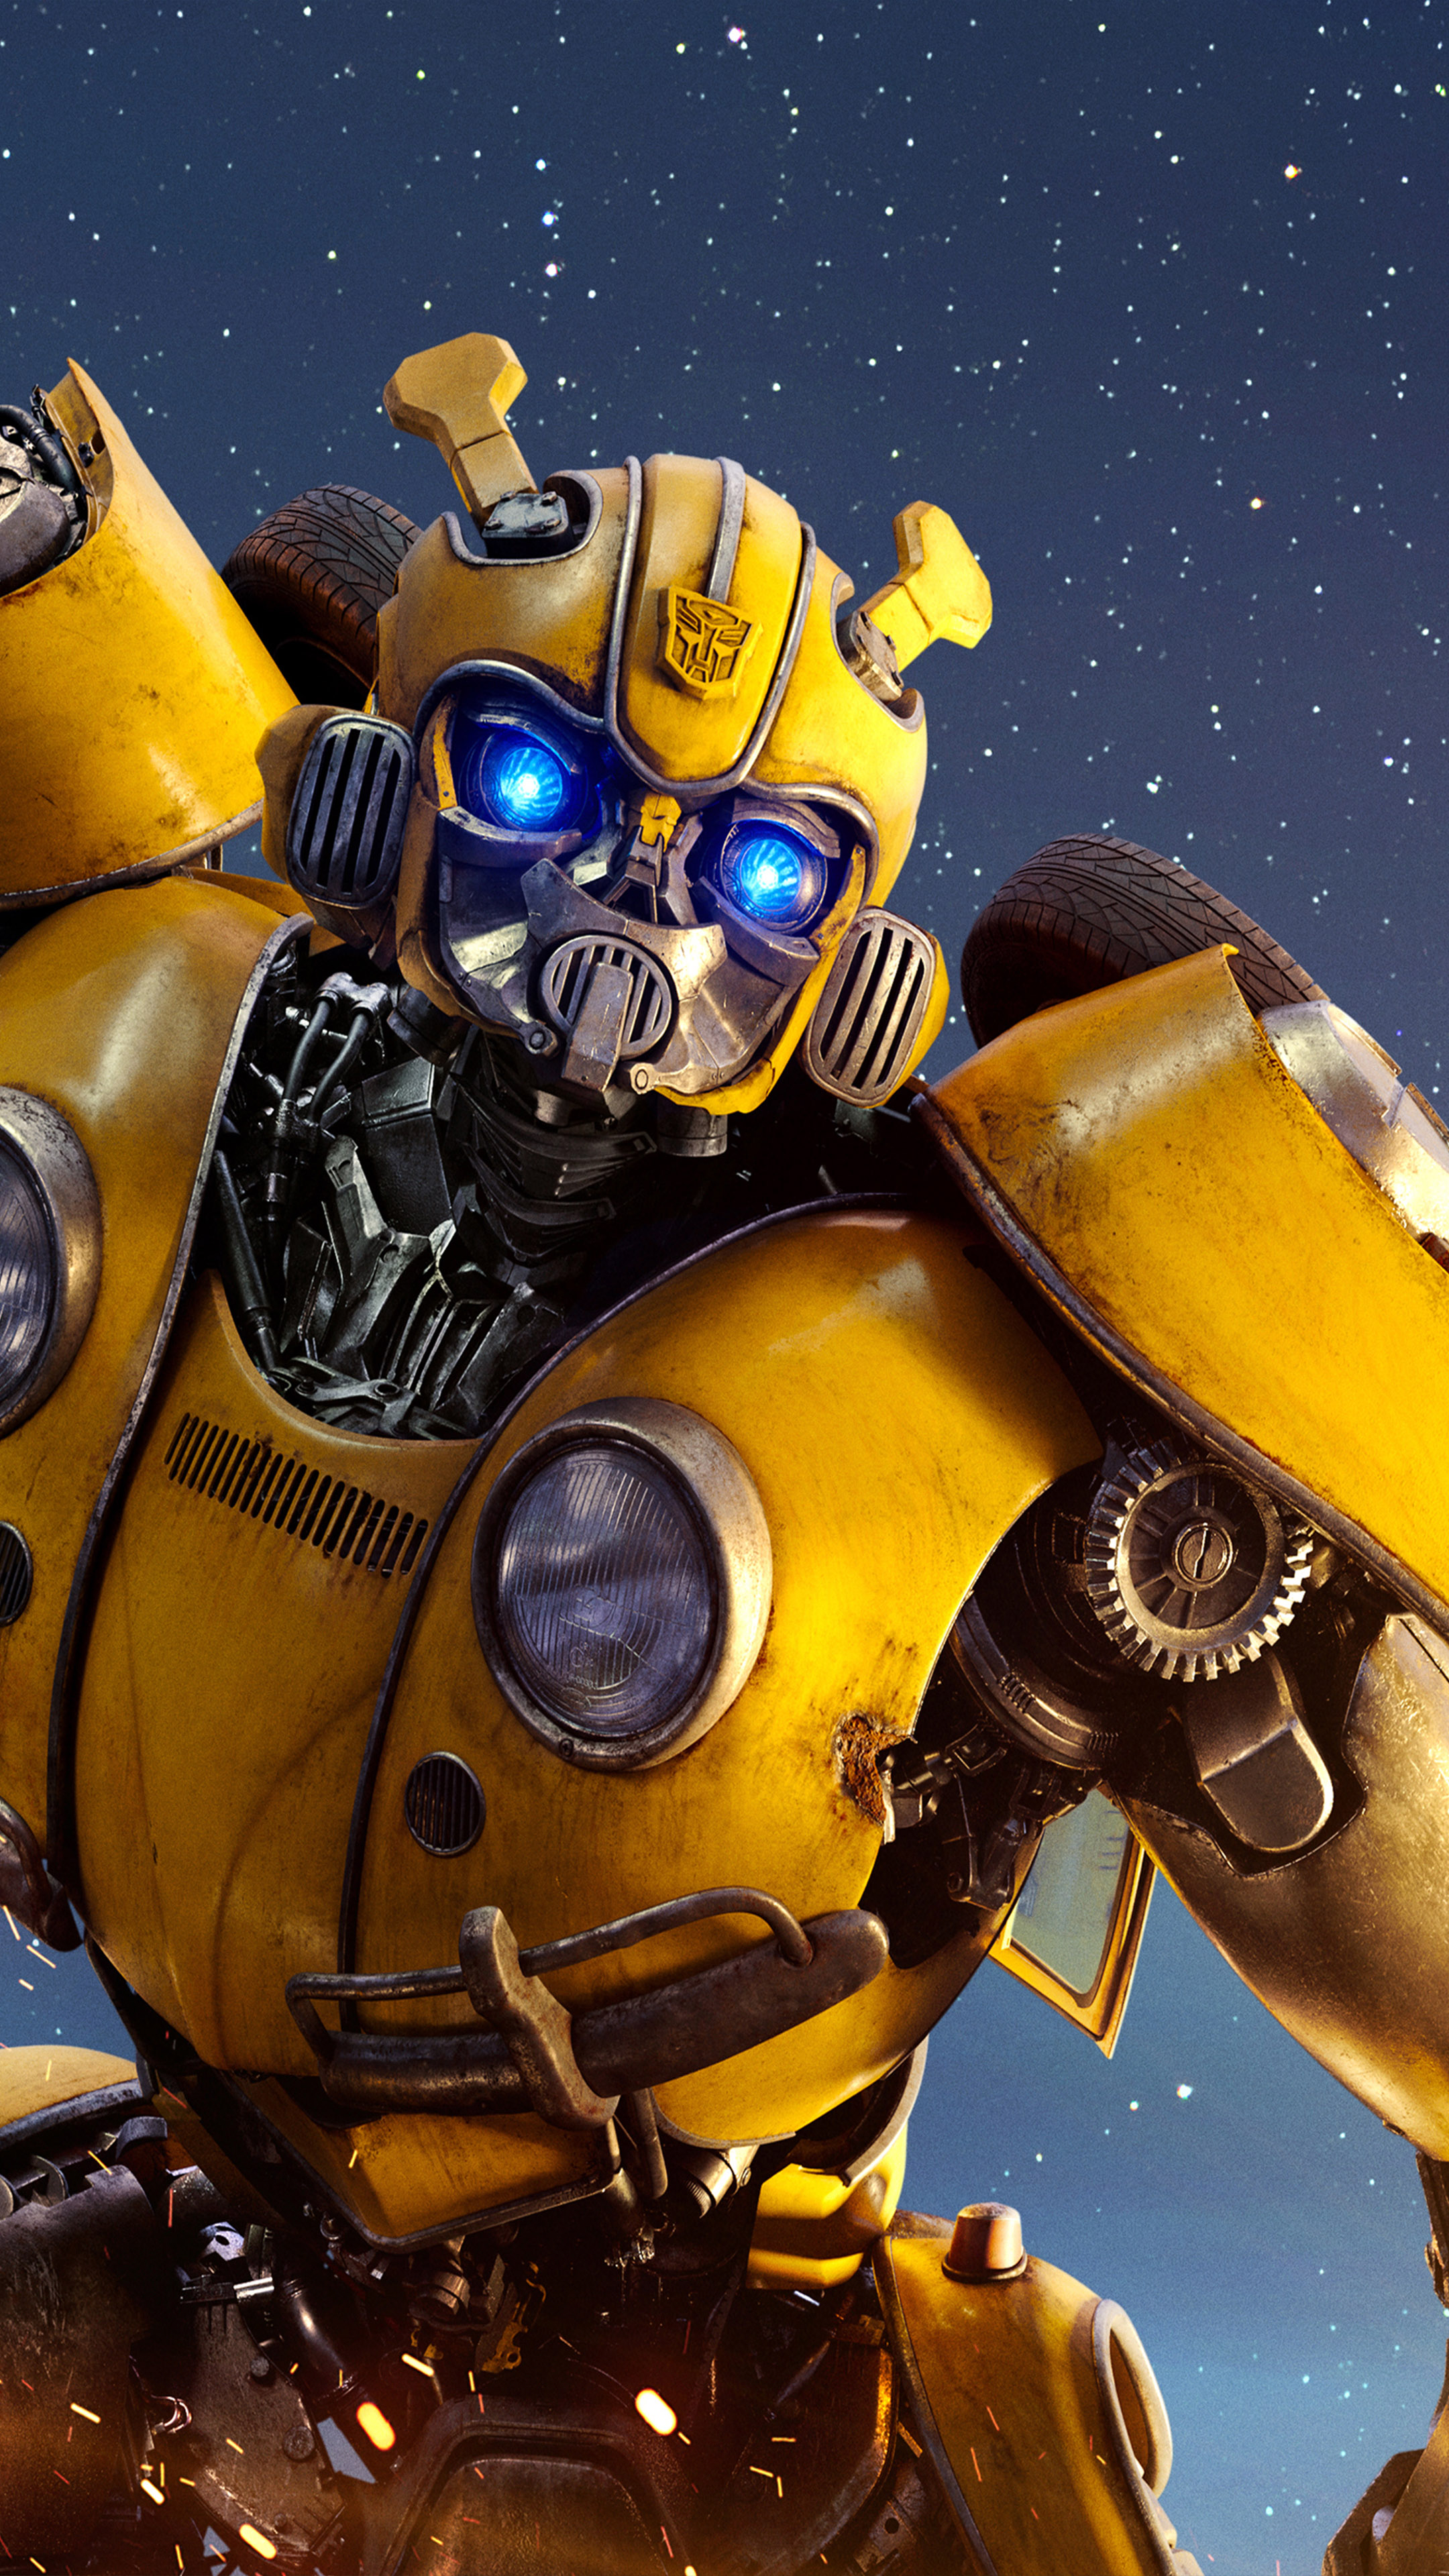 Download Bumblebee 2018 Free Pure 4K Ultra HD Mobile Wallpaper